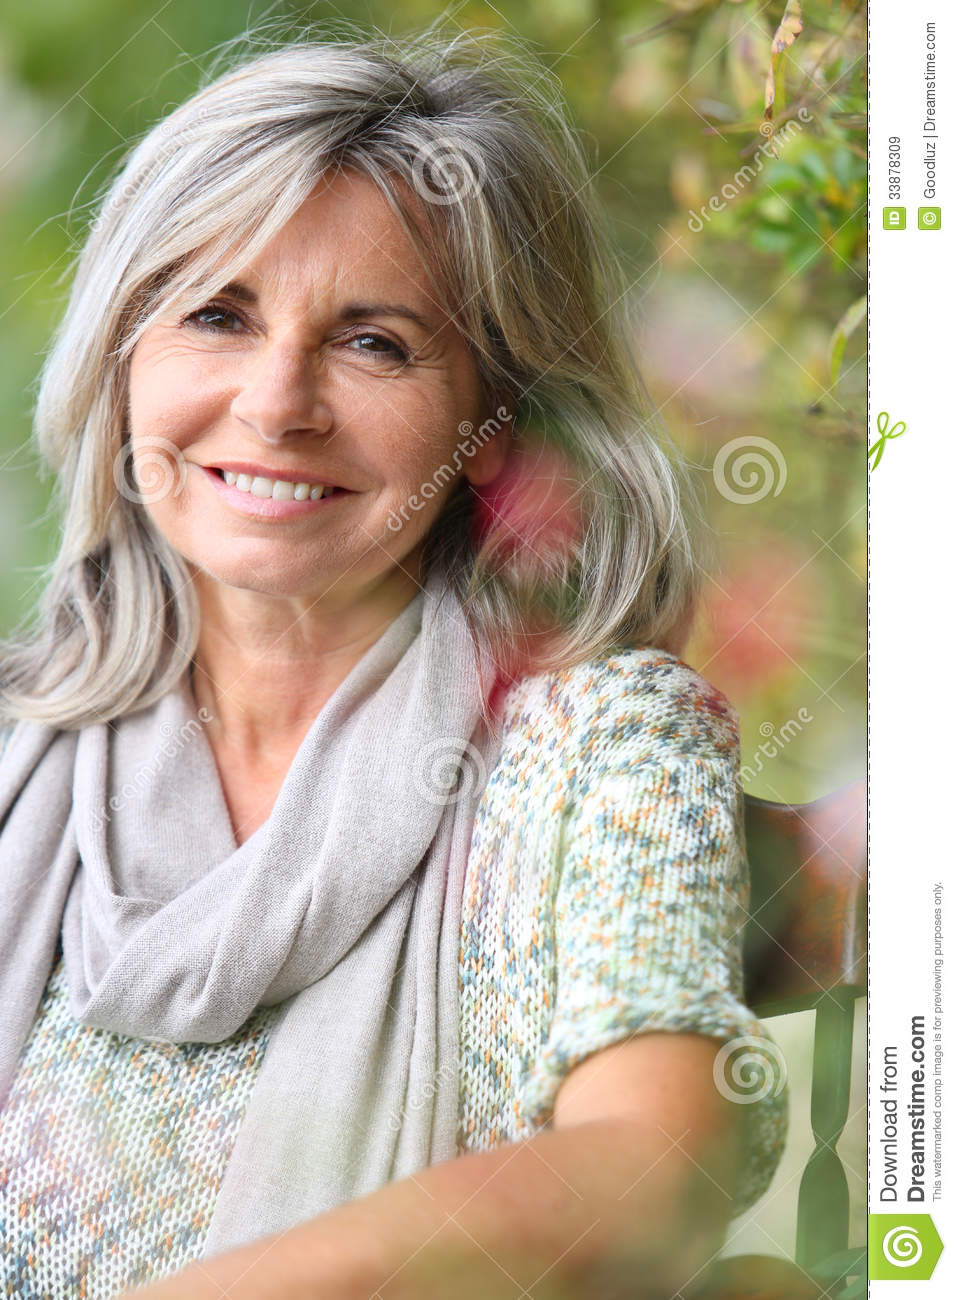 mature woman with gray hair sitting outdoor stock image - image of